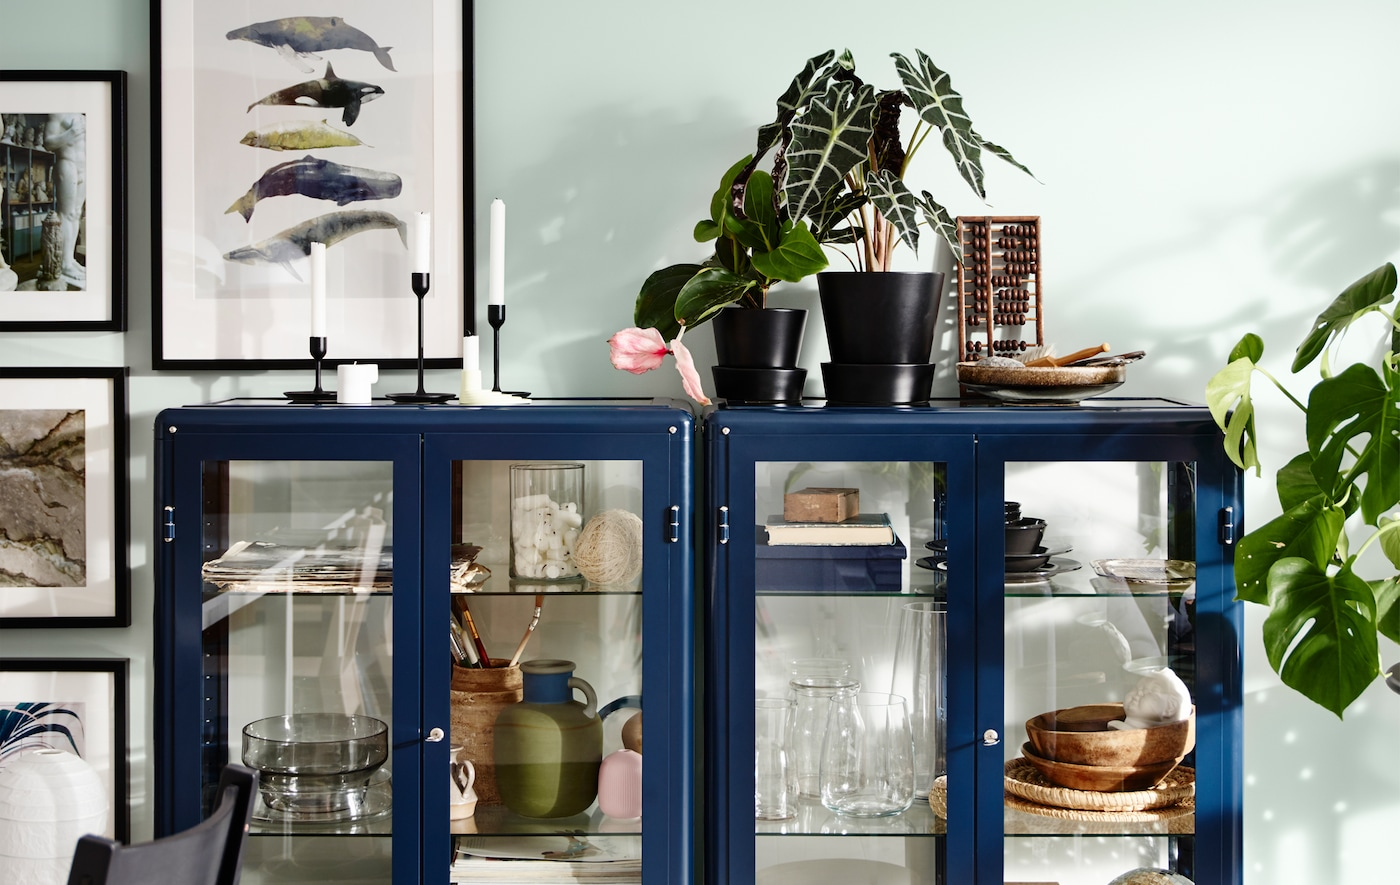 Two blue FABRIKÖR glass-door cabinets for displaying souvenirs, topped with plants and candle sticks.